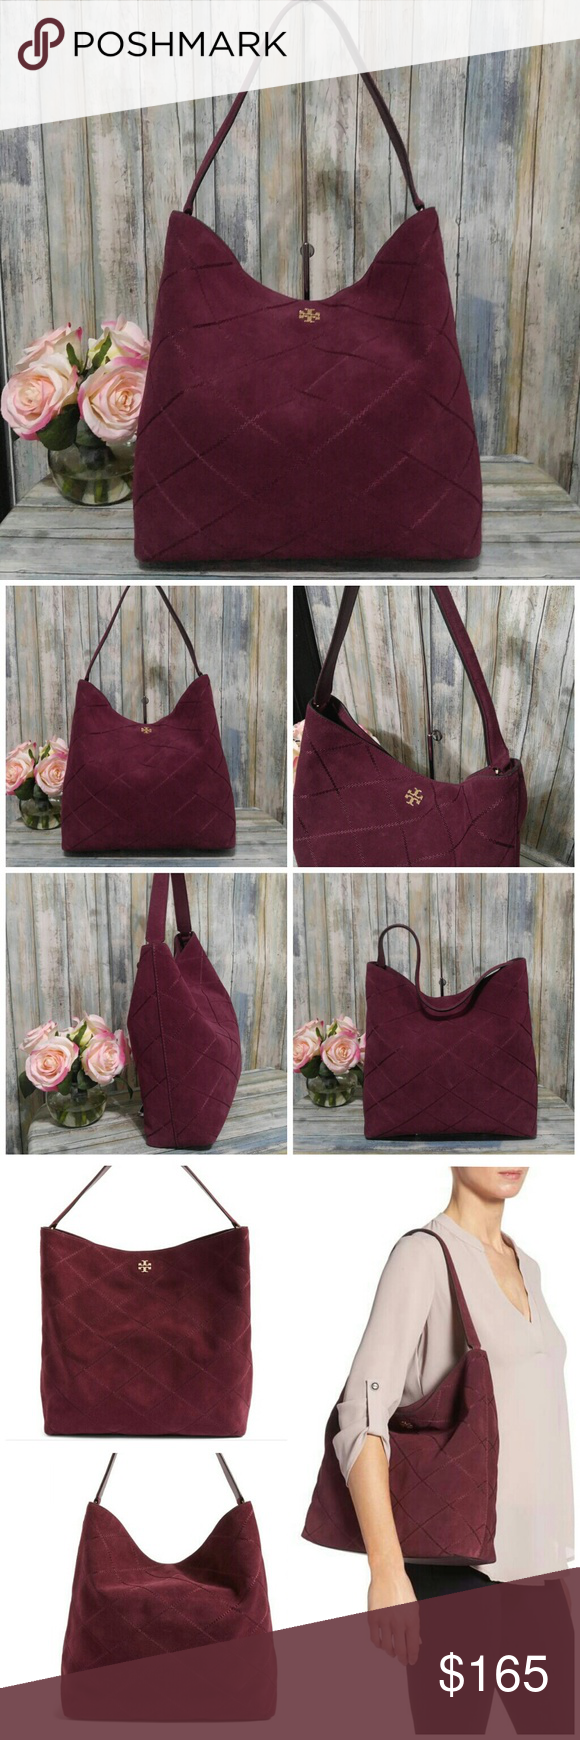 0ebc022e0b0 Tory Burch Port Suede Frida Stitched Hobo New without tags Port (dark  maroon) Tory